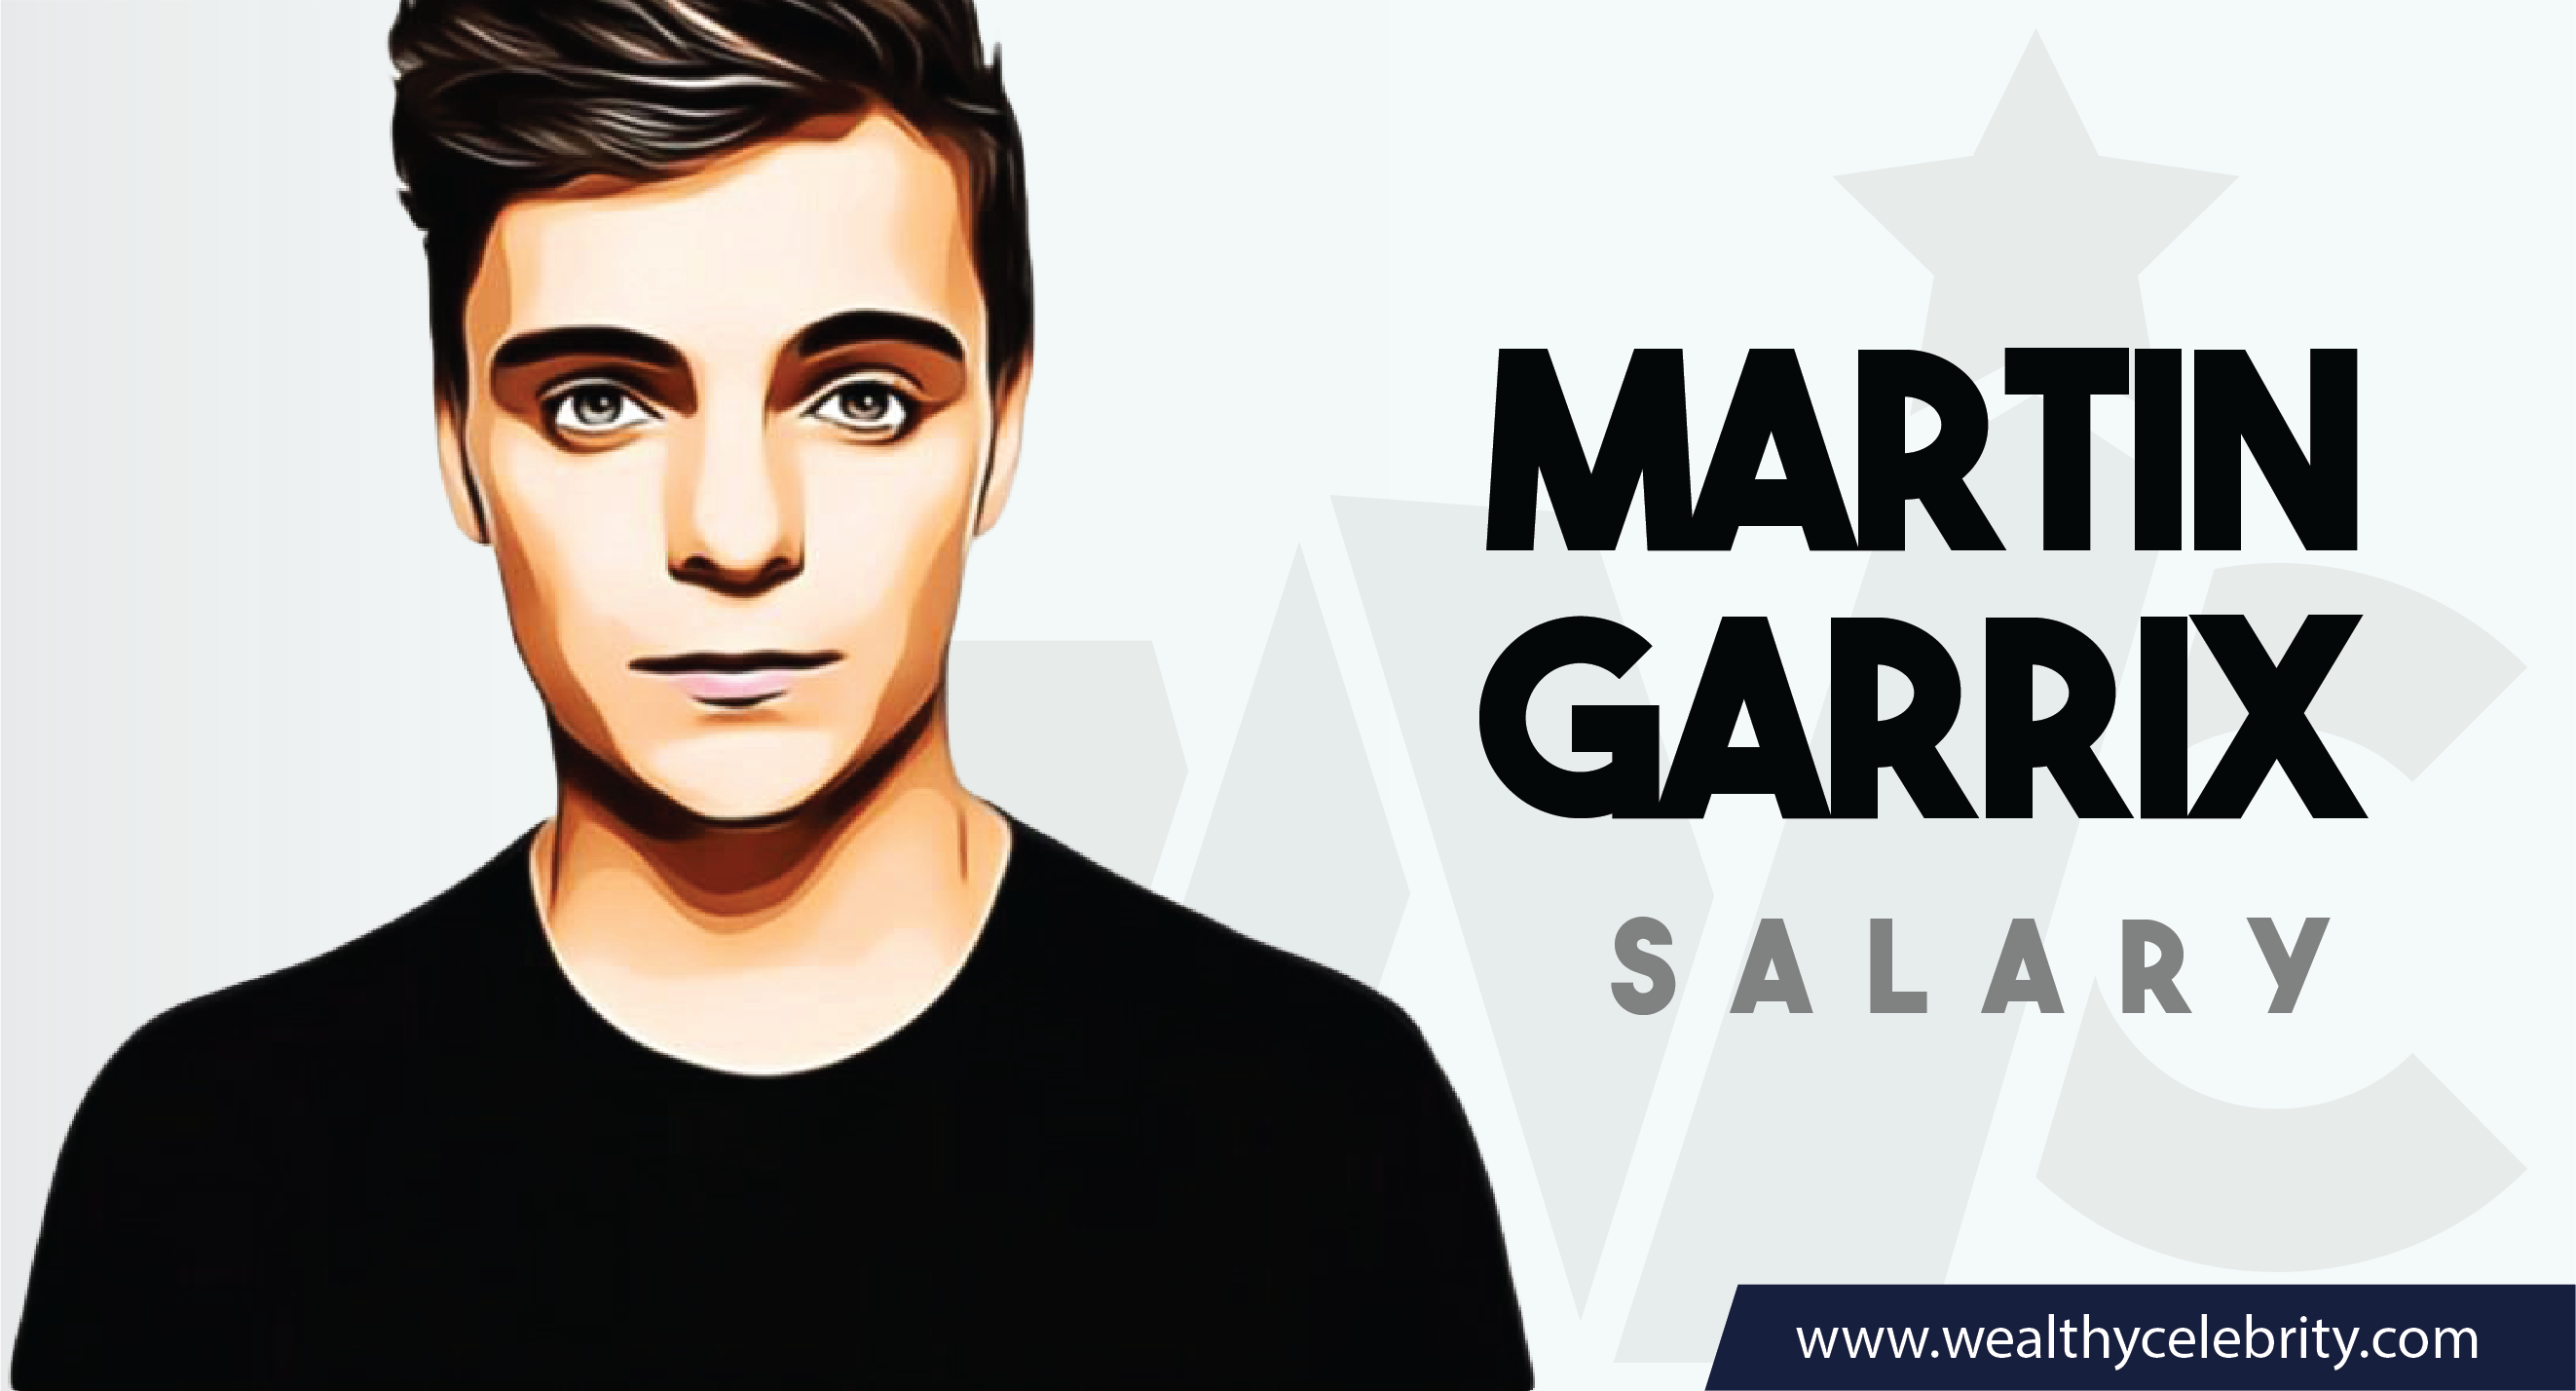 Martin Garrix DJ - Current Salary Net Worth